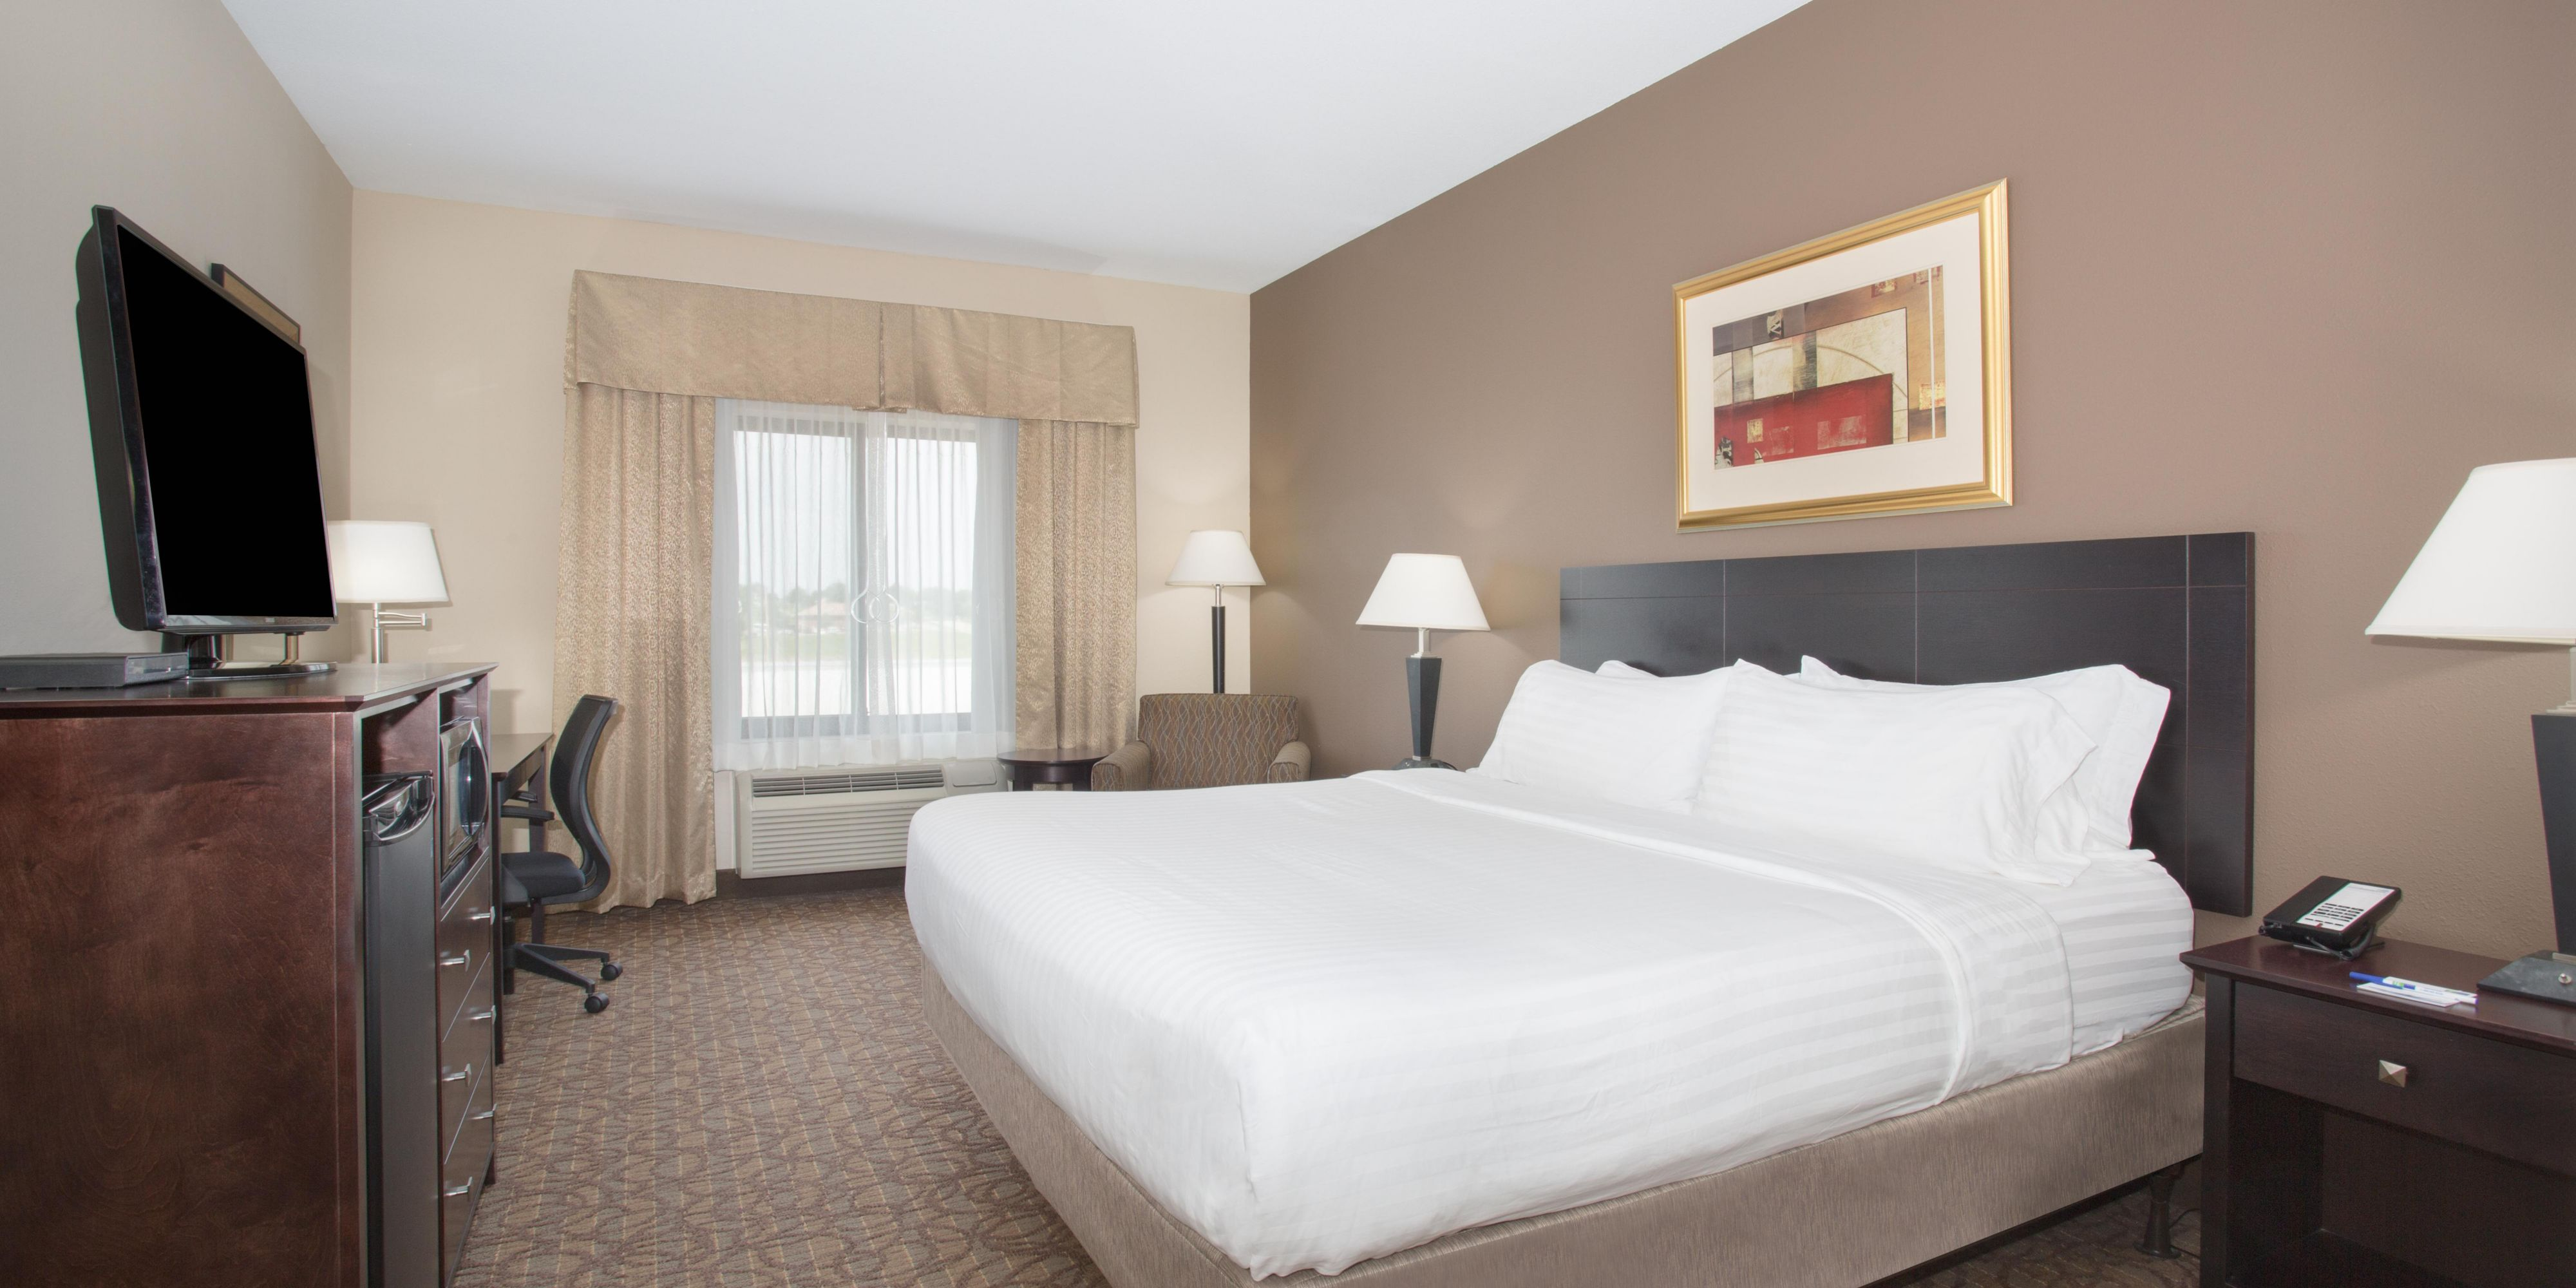 Holiday Inn Express & Suites Concordia US81 Hotel by IHG